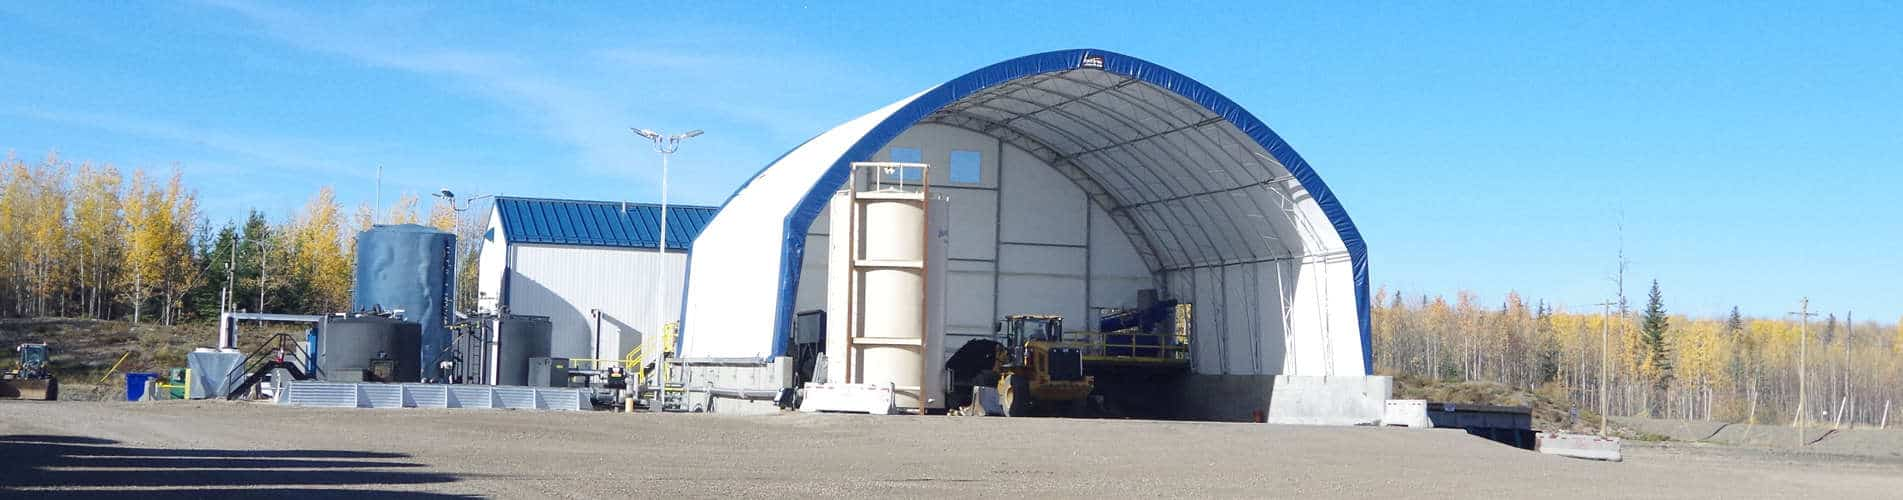 Prefabricated Storage Building used for exploration stations or mining buildings